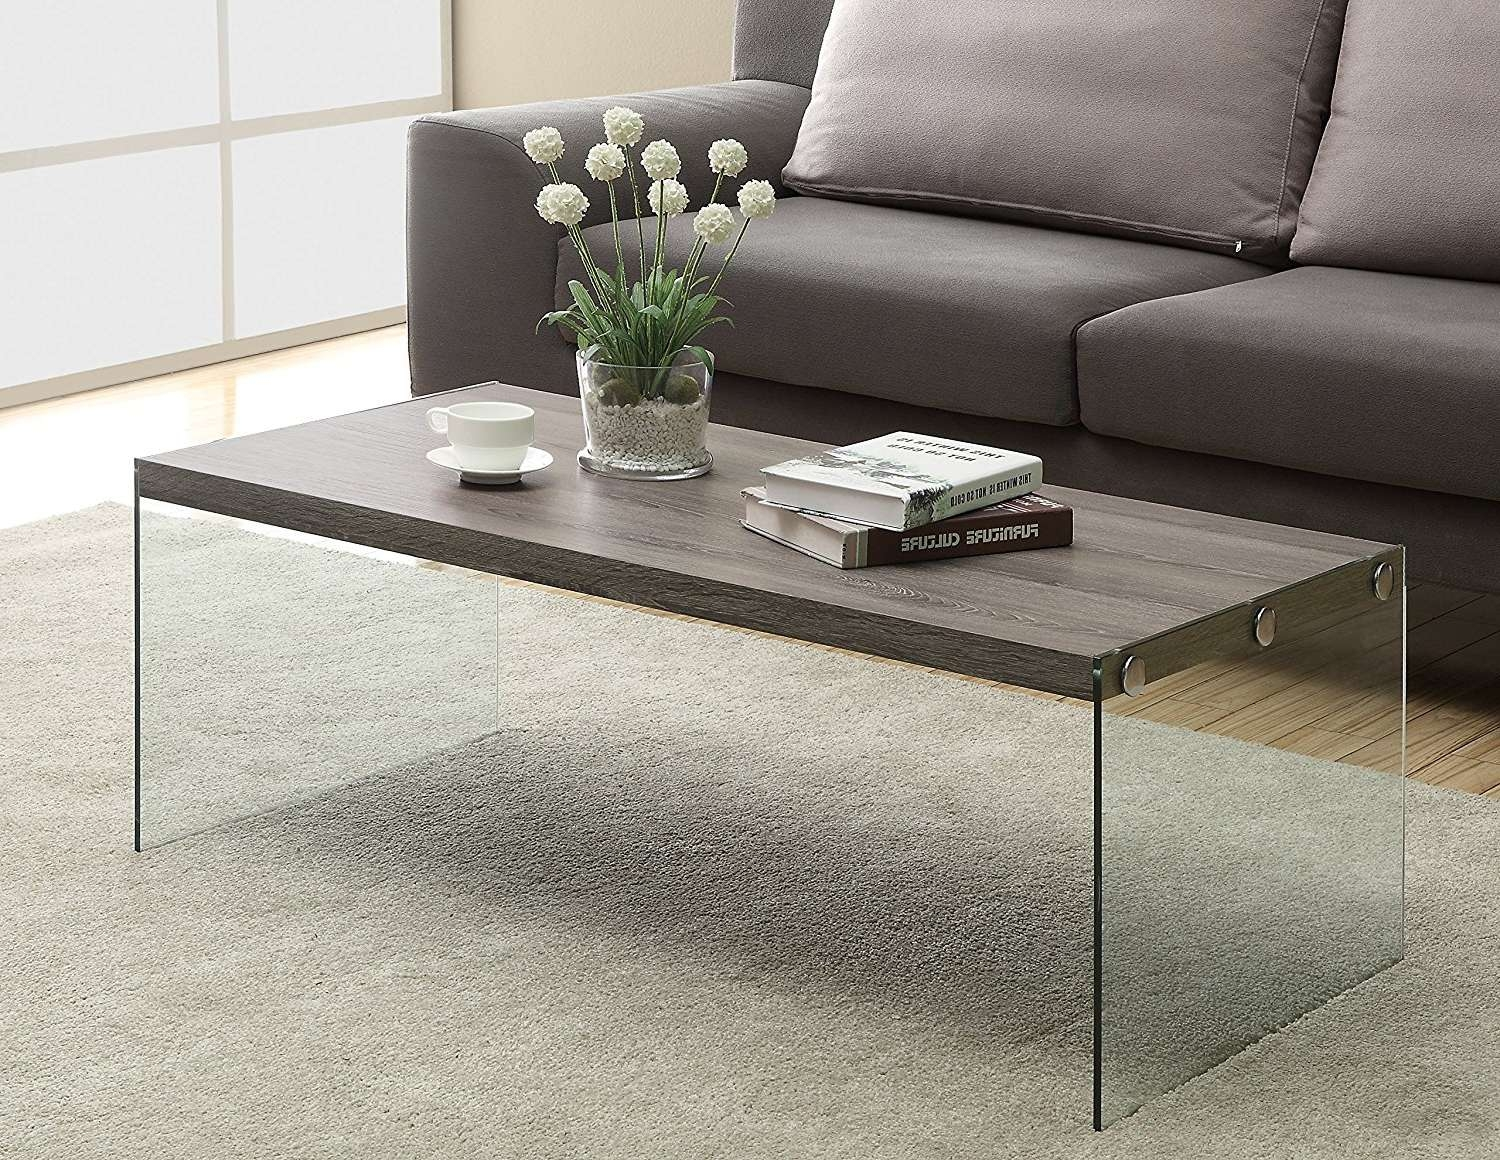 Widely Used Cheap Coffee Tables For Cheap Coffee Tables Under $100 That Work For Every Style (View 20 of 20)